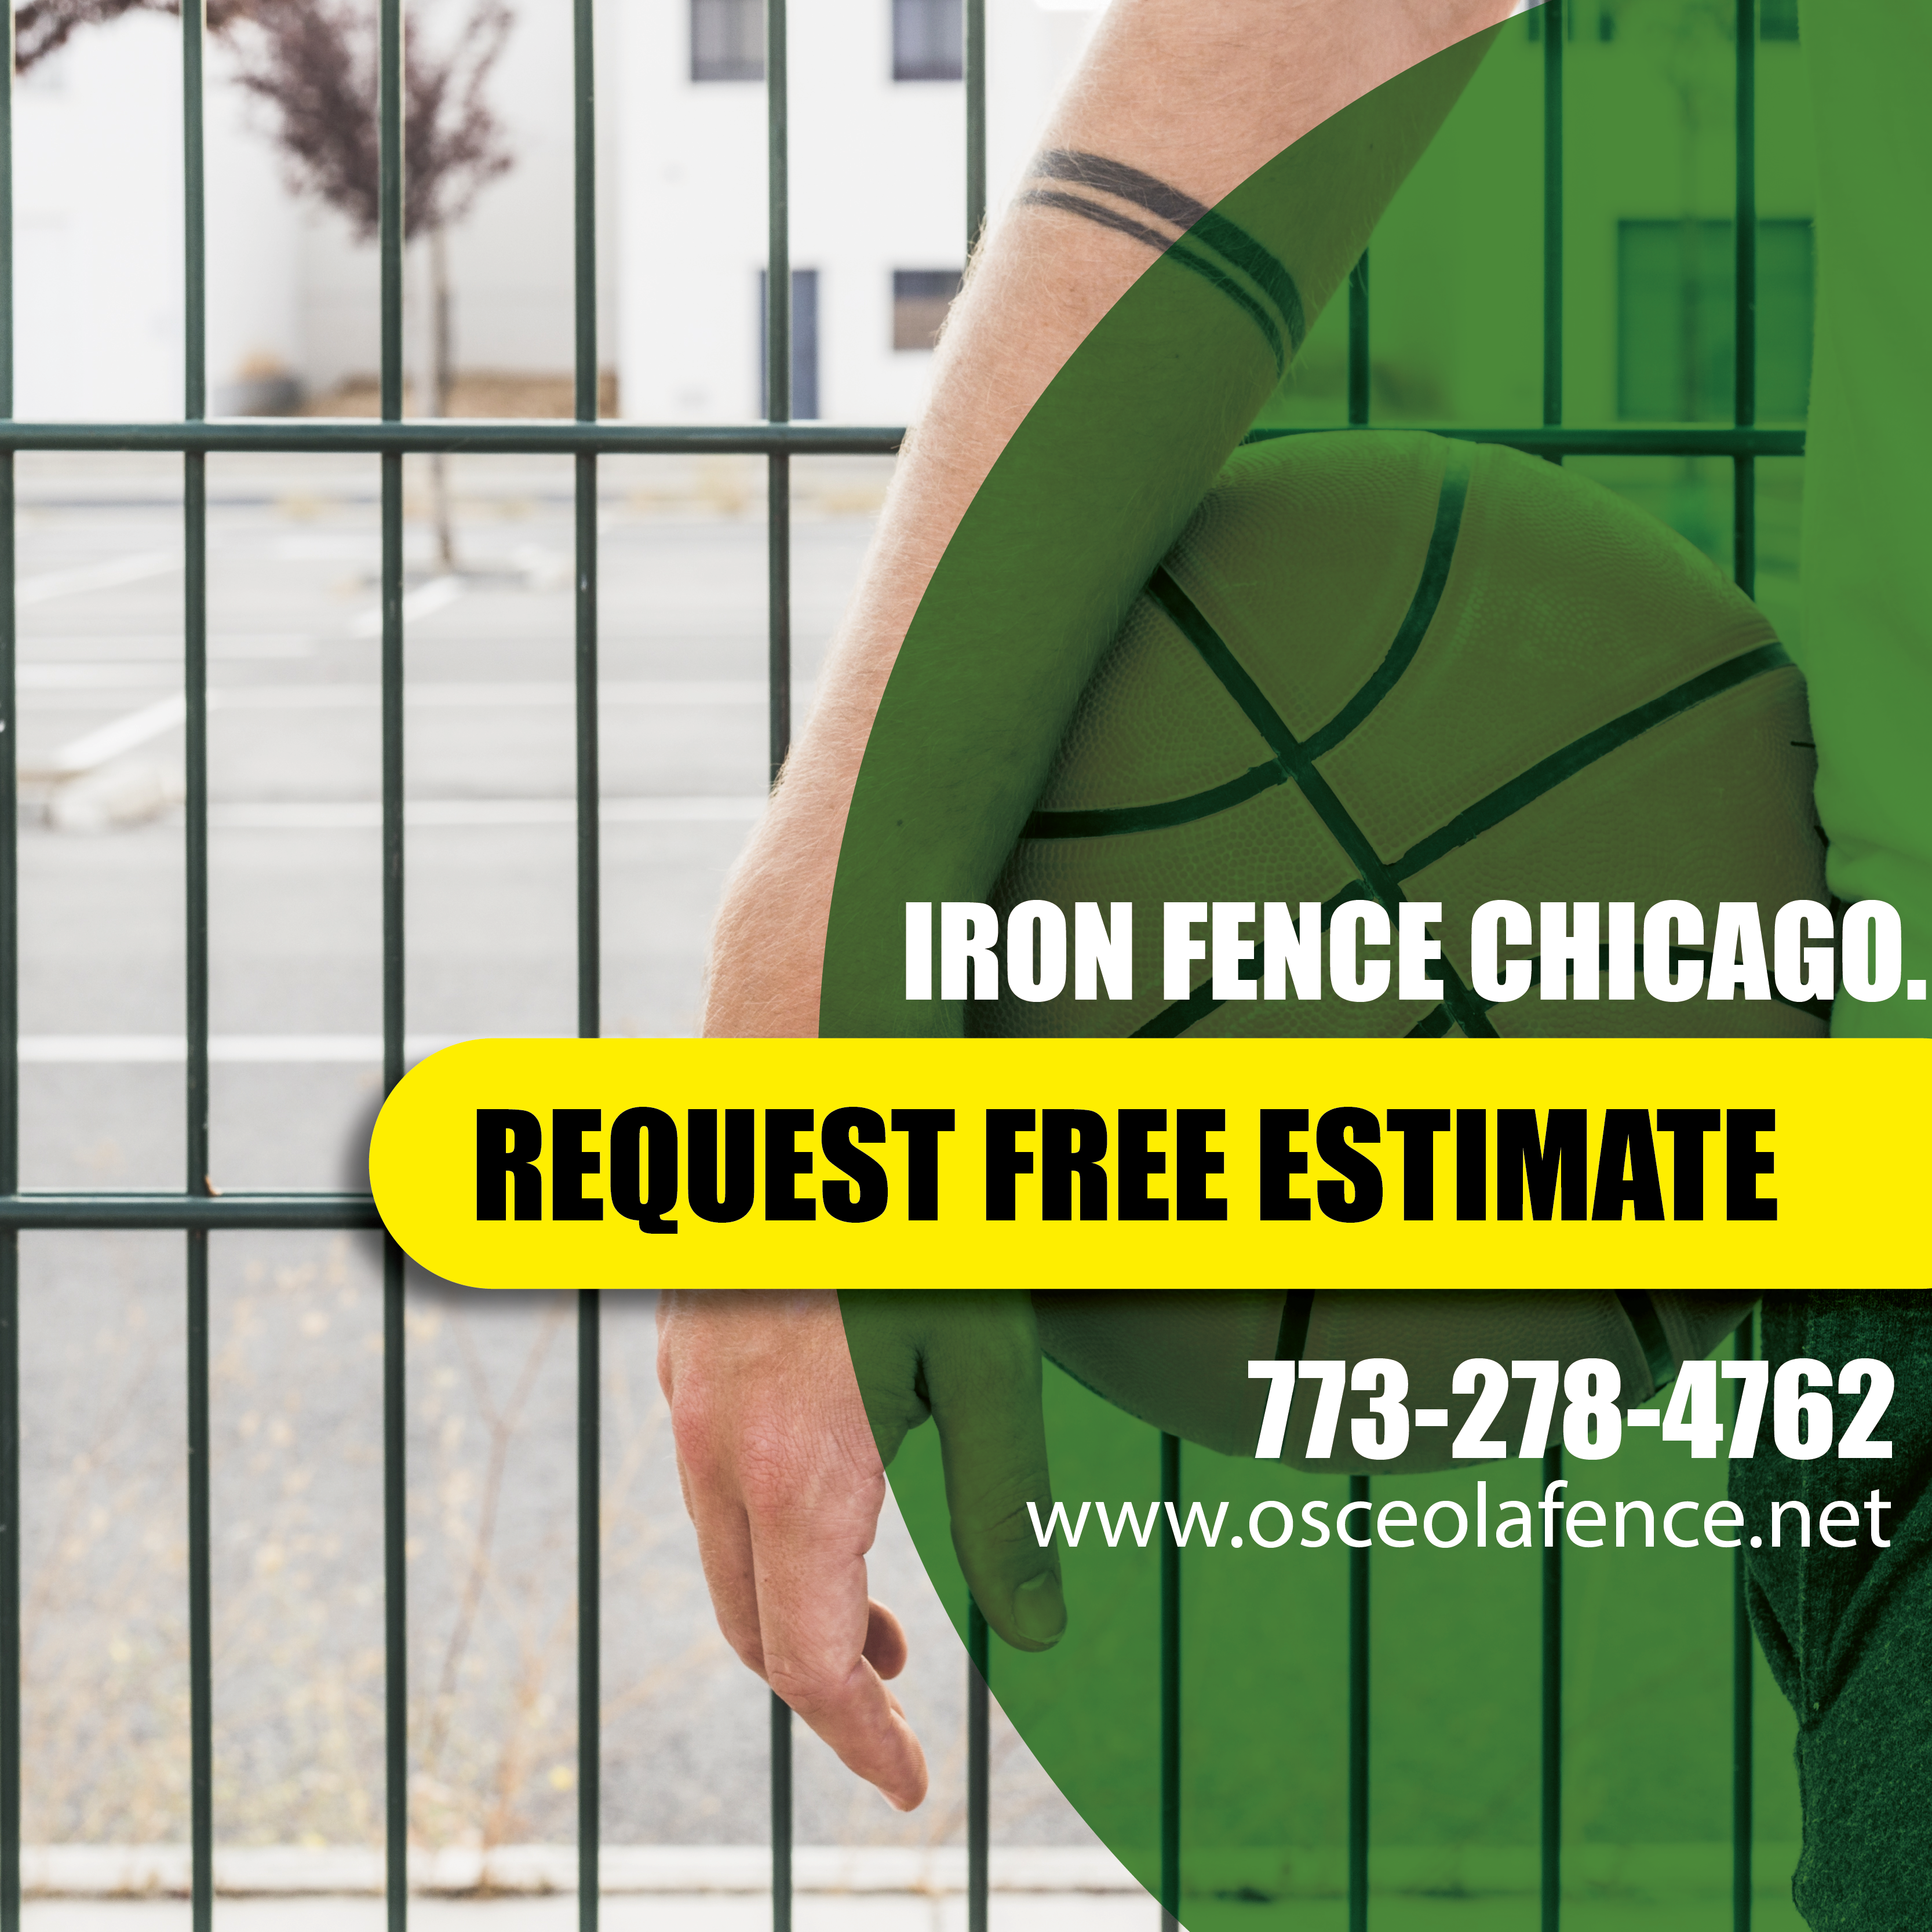 Osceola Fence Corporation Is The Number One Industrial Fence Company And We Will Provided A Large Selecti Fencing Companies Custom Ironwork Wrought Iron Fences